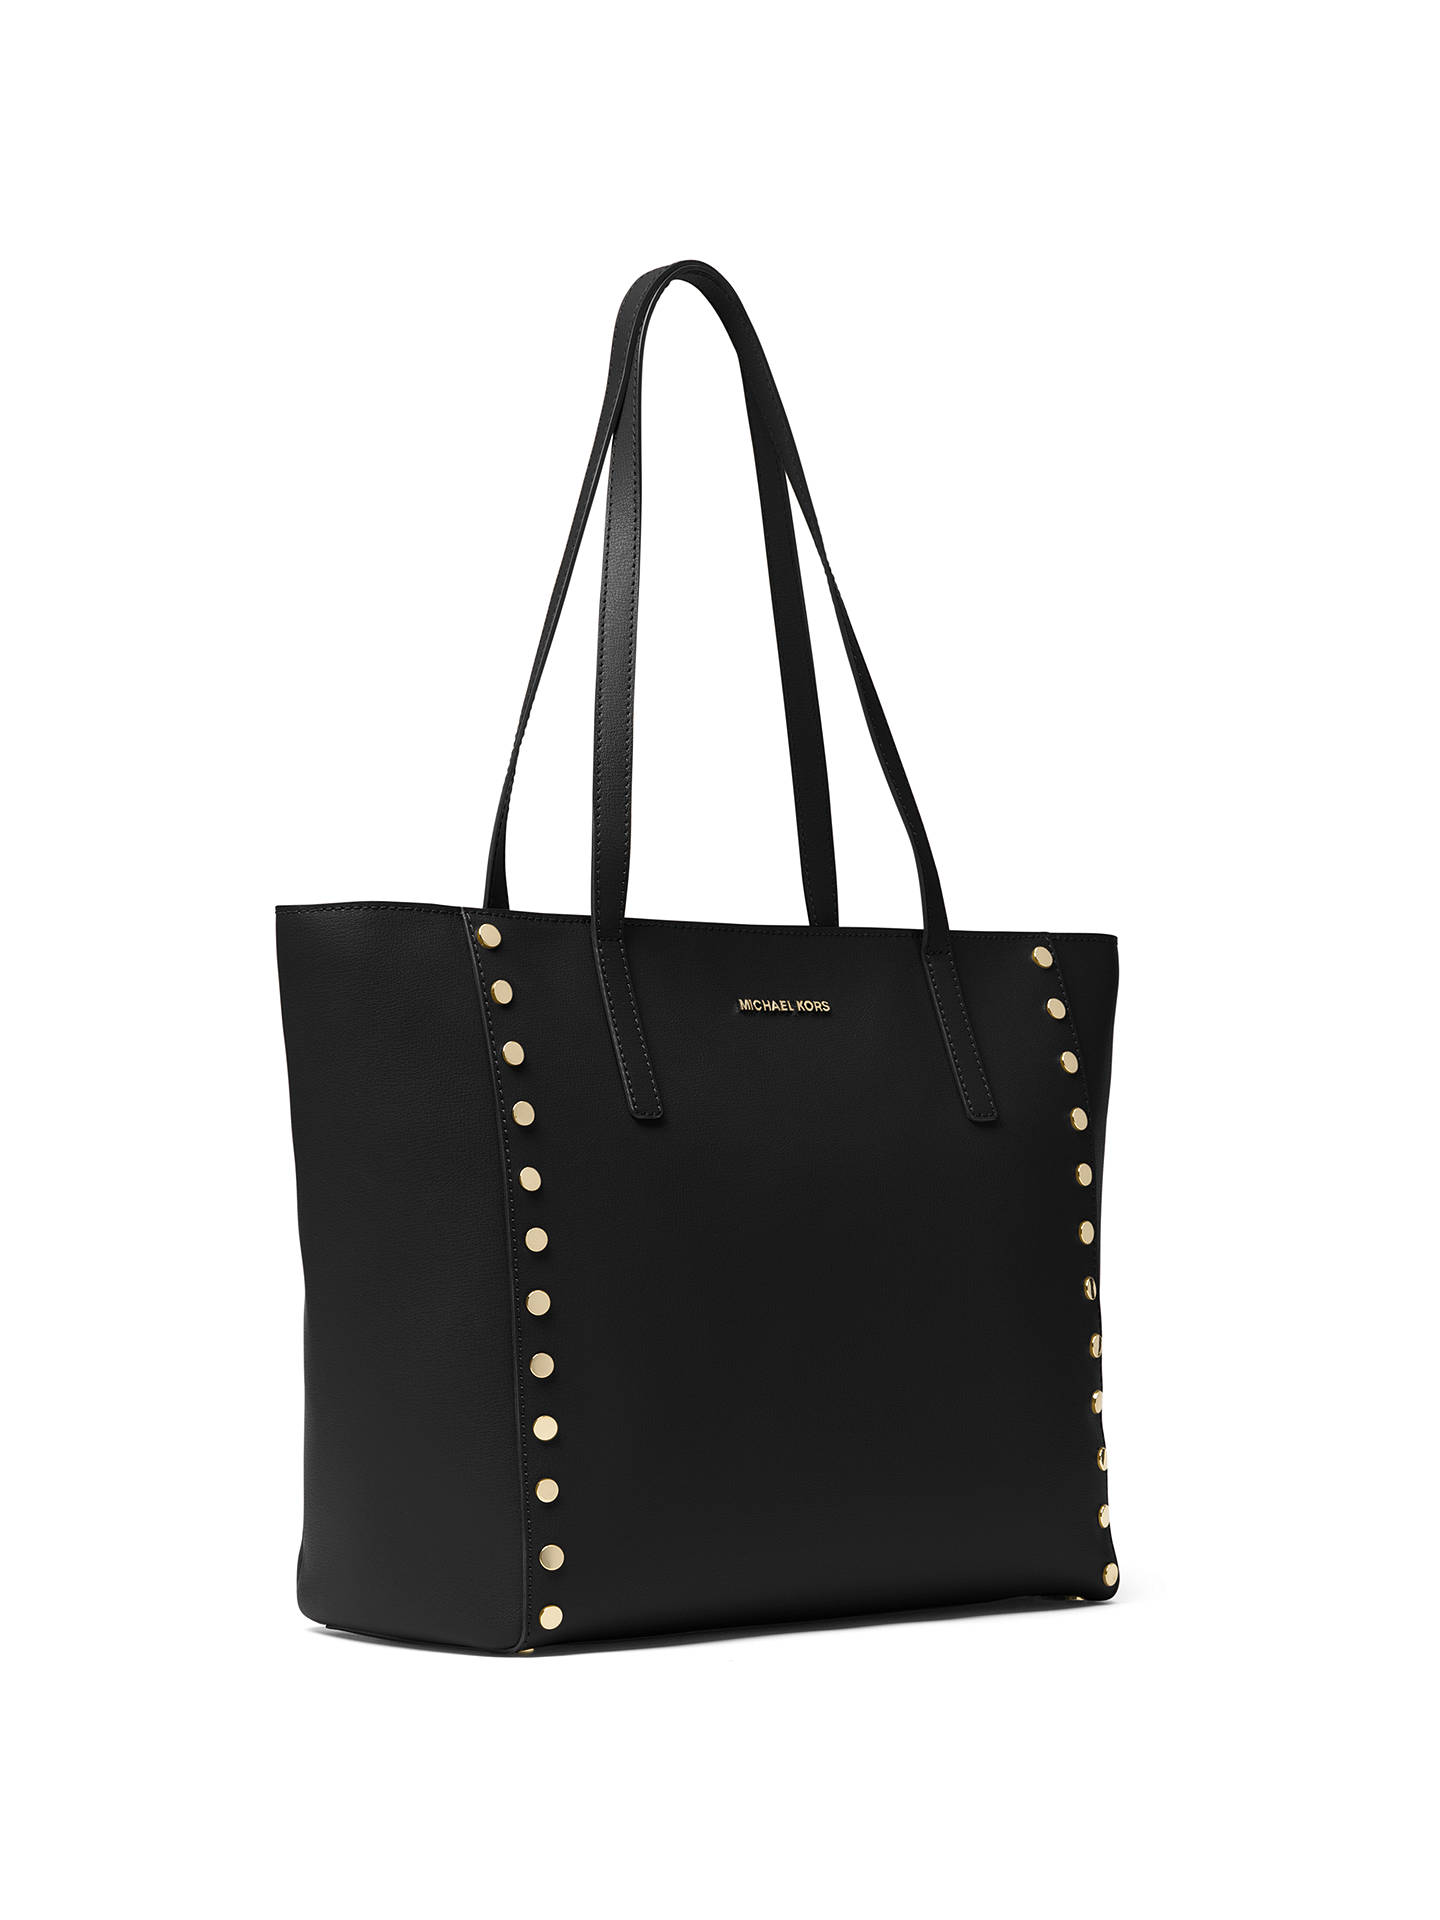 7617905363e0 Buy MICHAEL Michael Kors Rivington Leather Studded Large Tote Bag, Black  Online at johnlewis.